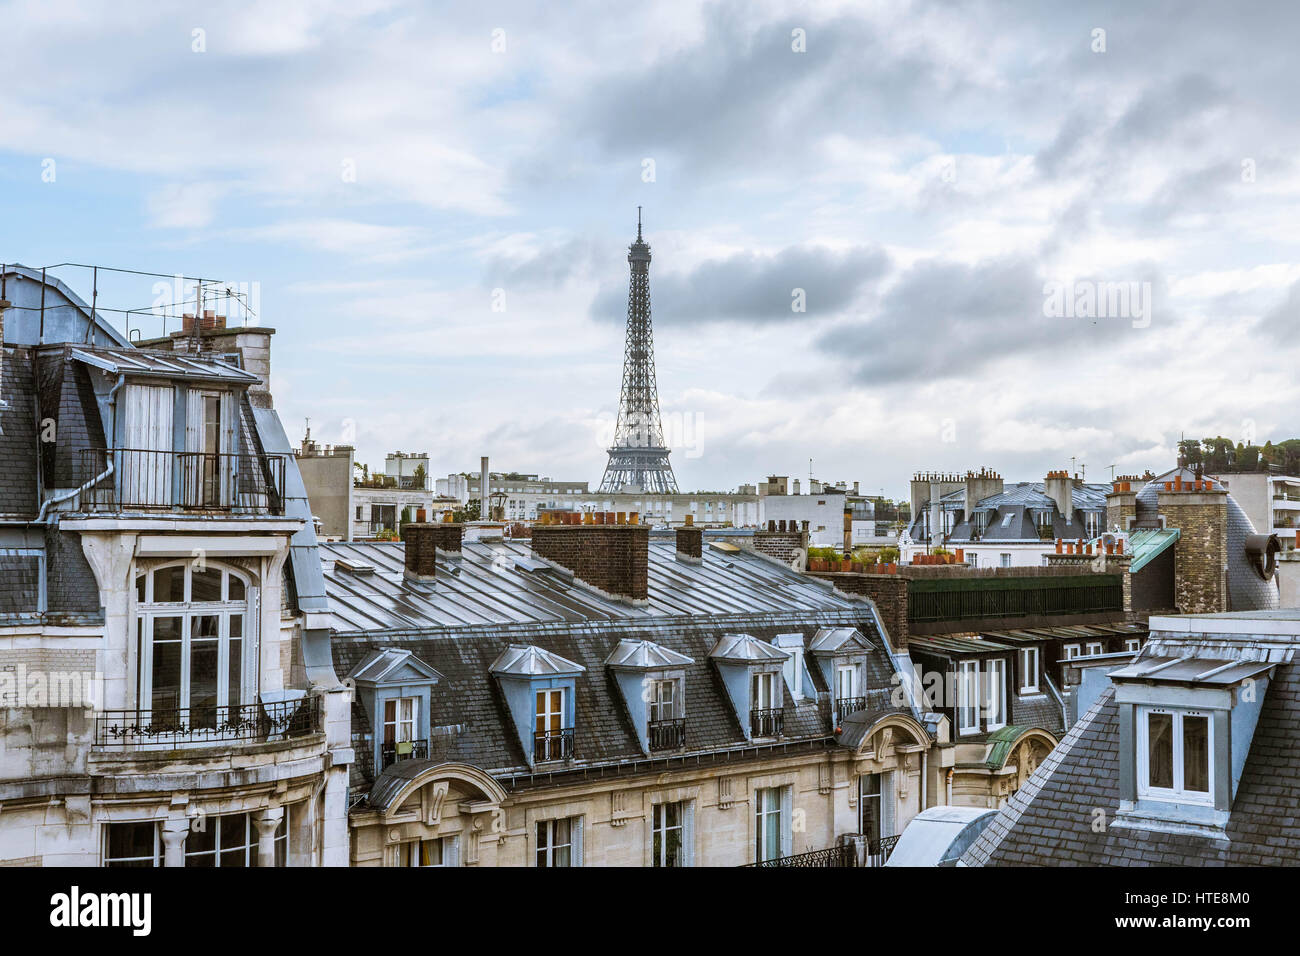 view on eiffel tower from a roof in paris on a grey cloudy day stock photo 135538480 alamy. Black Bedroom Furniture Sets. Home Design Ideas